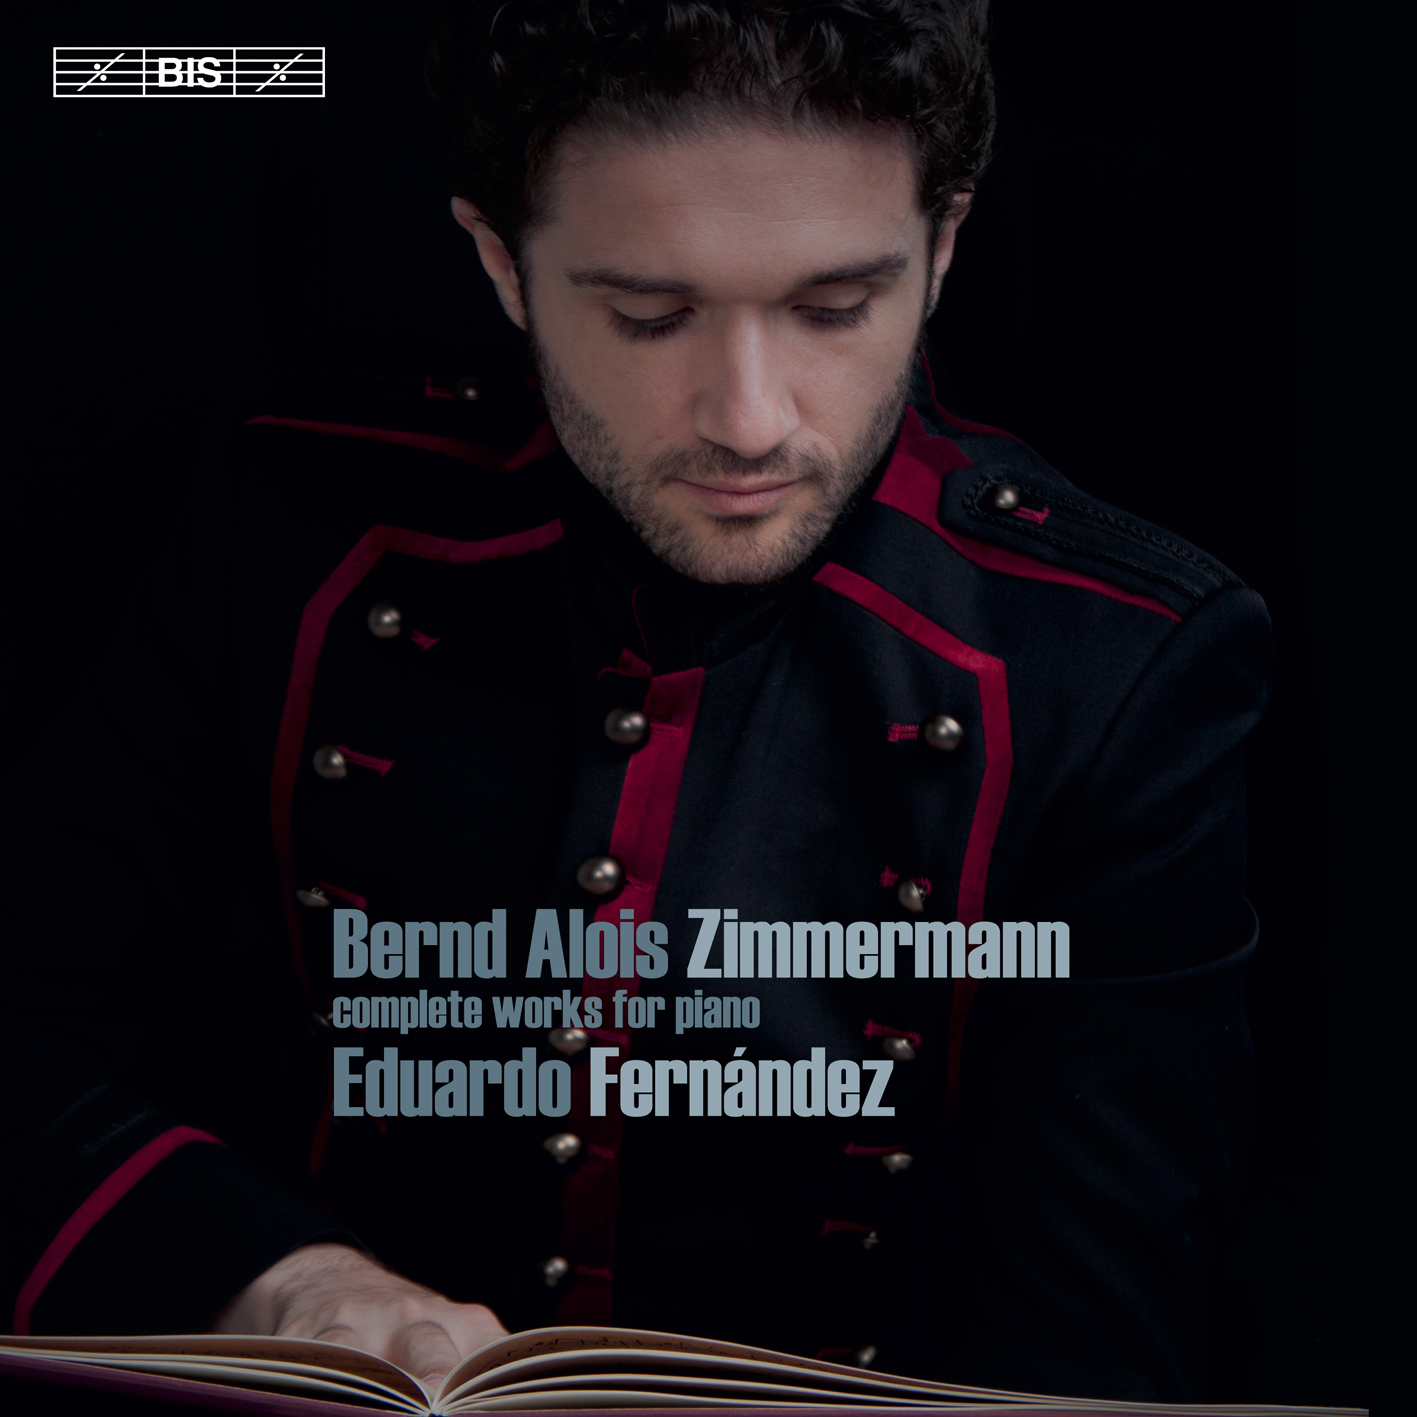 Bernd Alois Zimmermann / Works for Piano (Complete) // Eduardo Fernandéz